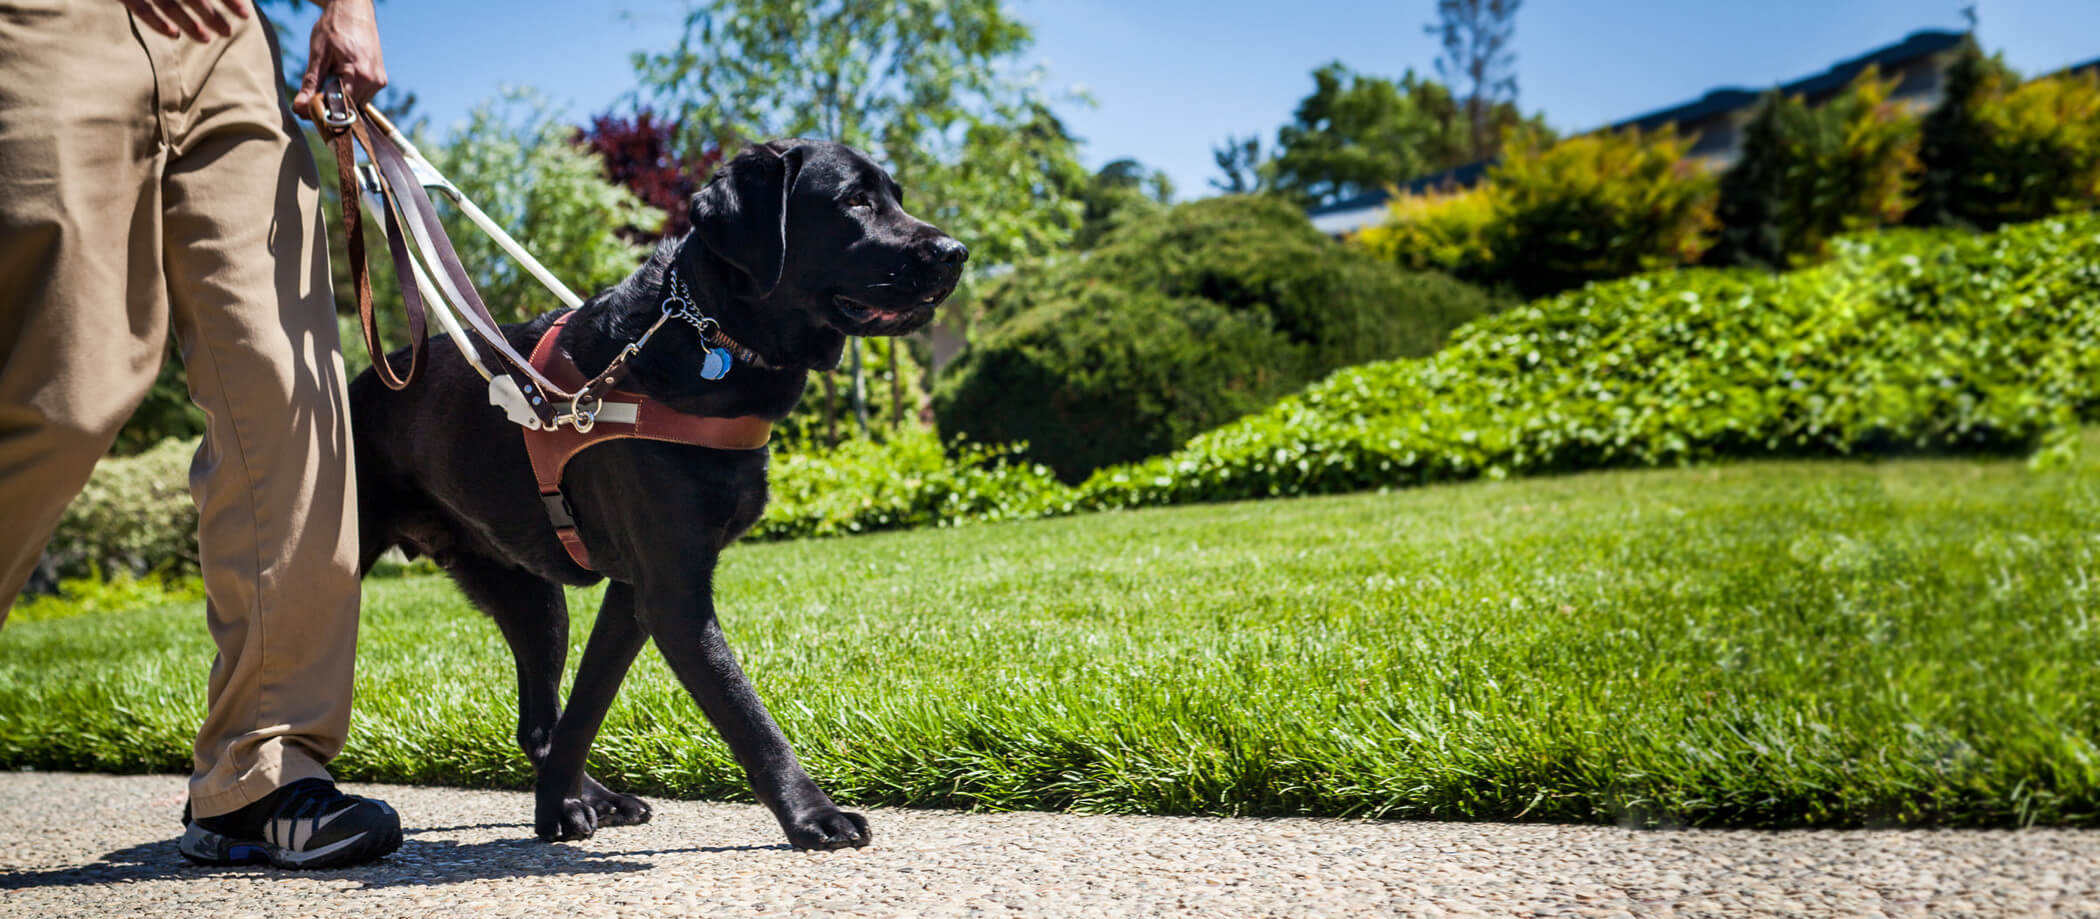 A black Lab guide dog walks on the sidewalk (person's legs are pictured)